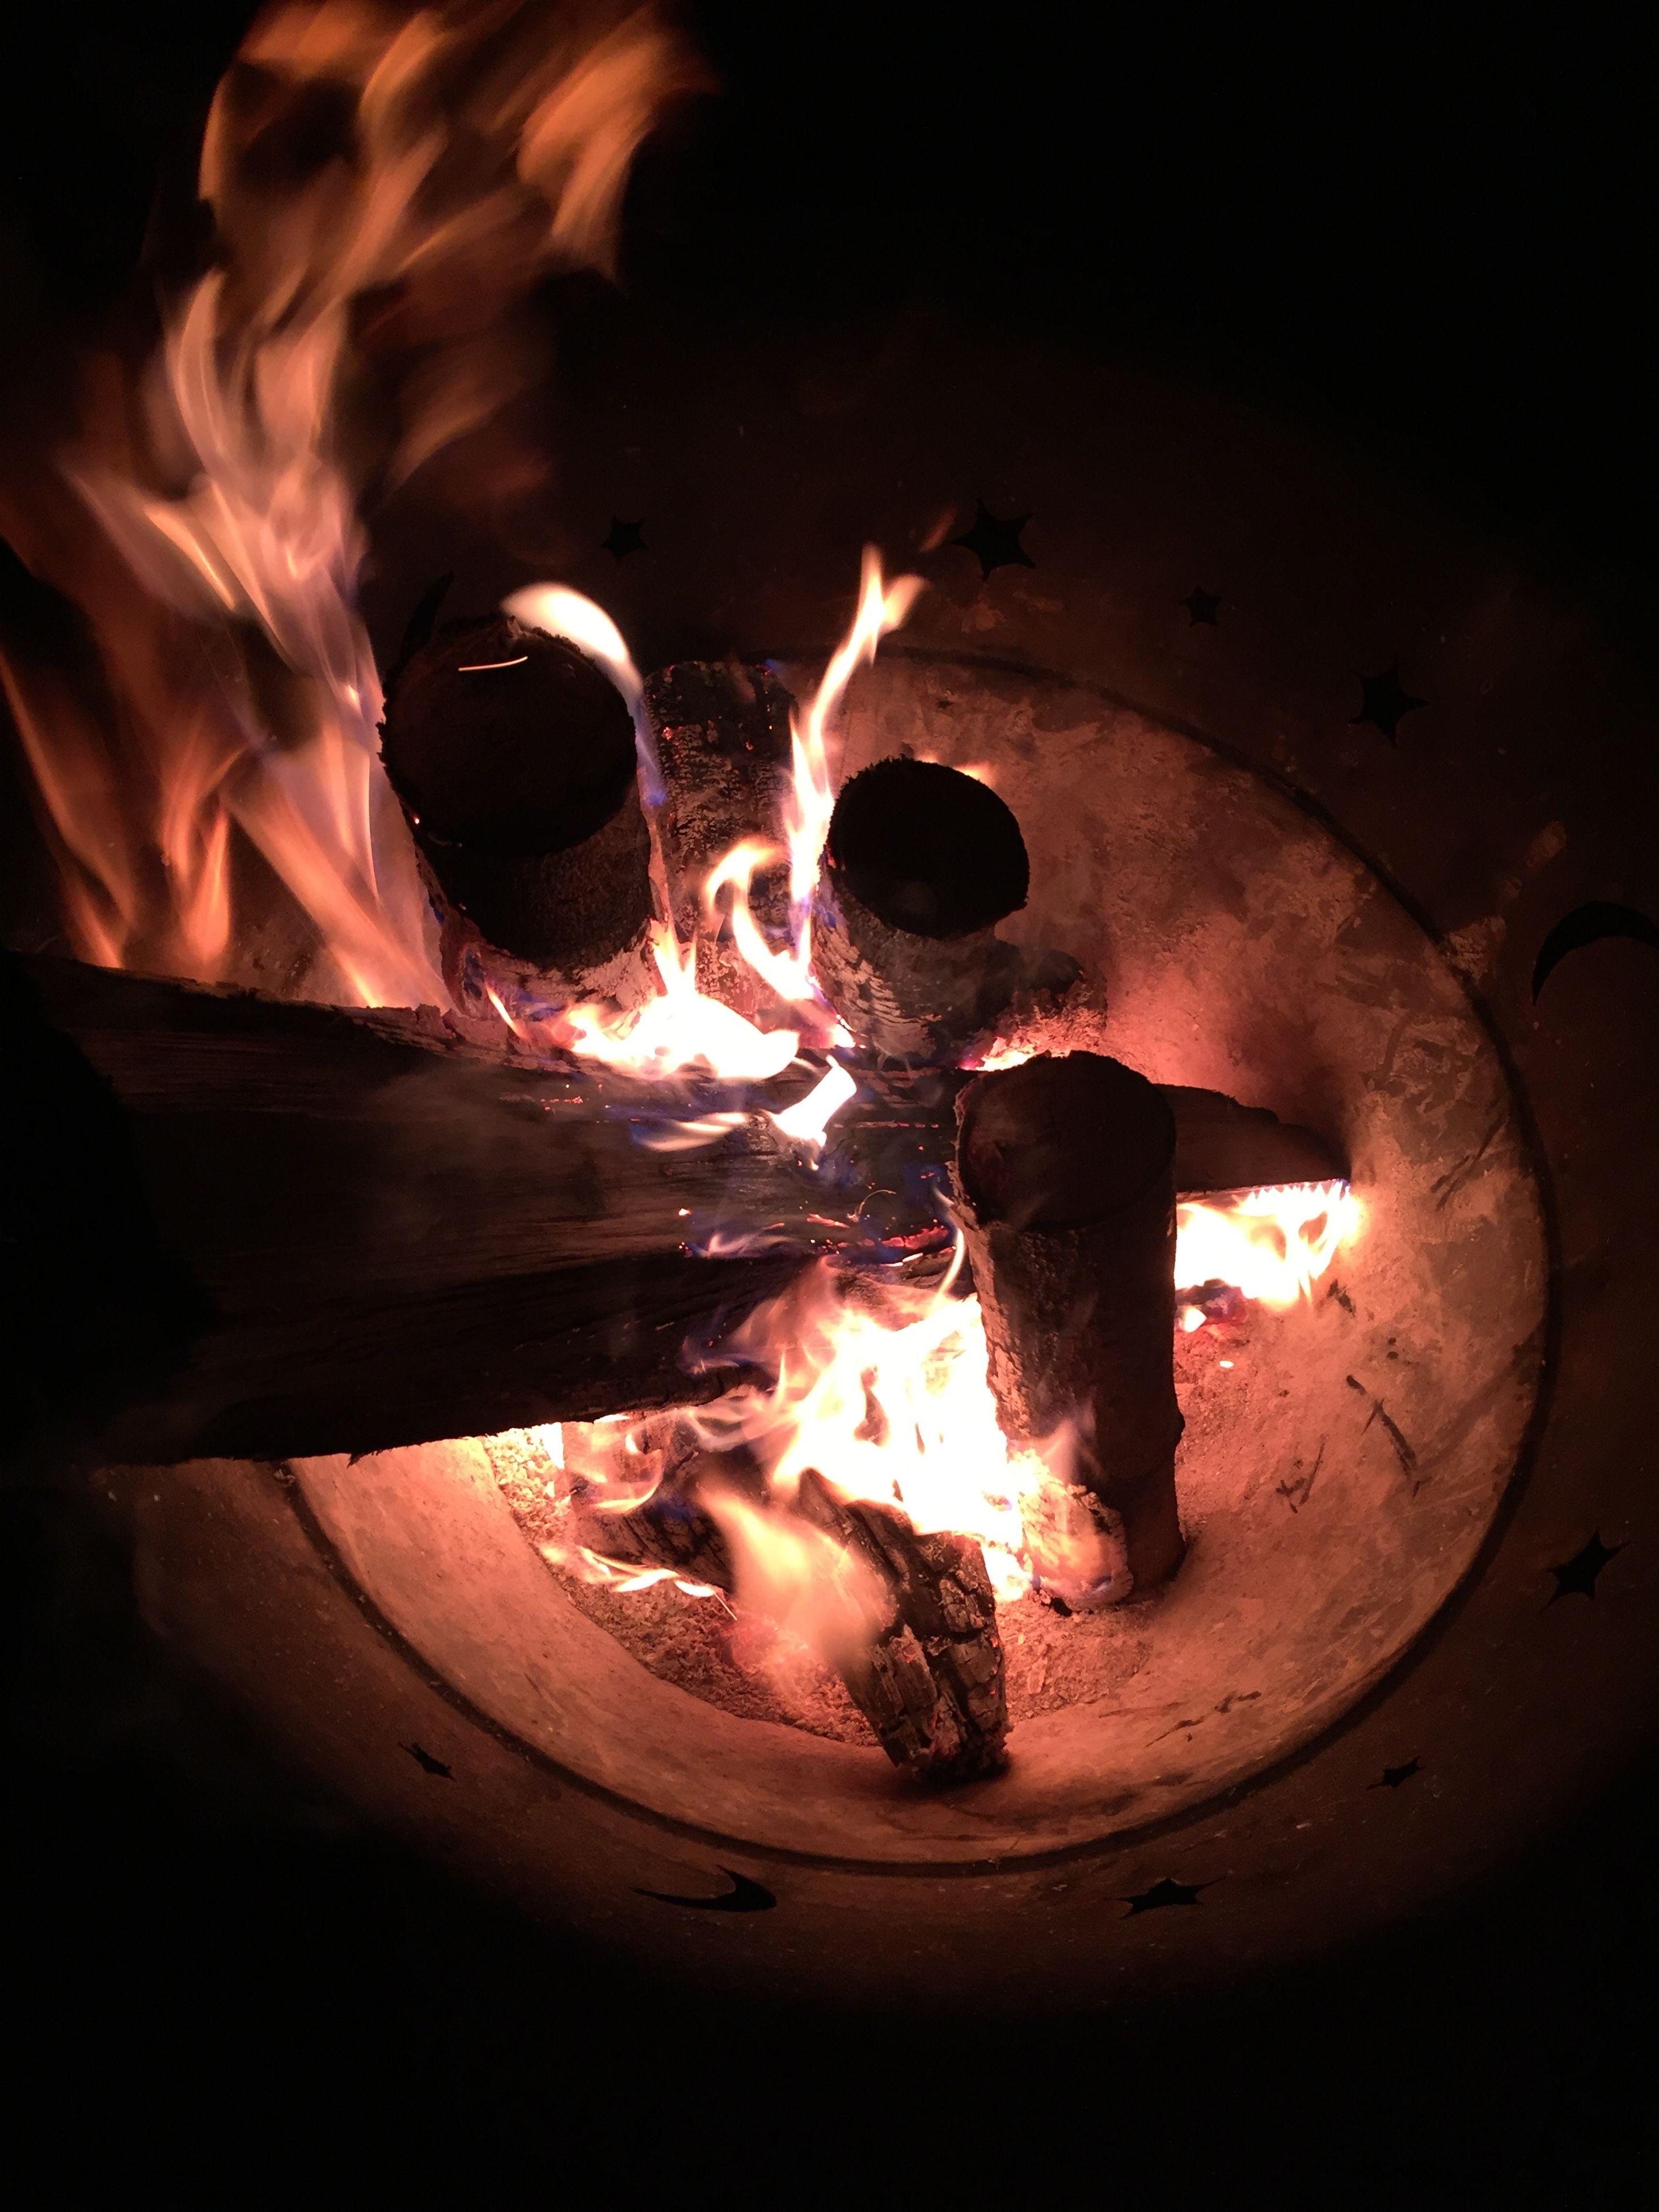 fire - natural phenomenon, flame, burning, heat - temperature, glowing, night, no people, motion, close-up, bonfire, outdoors, ash